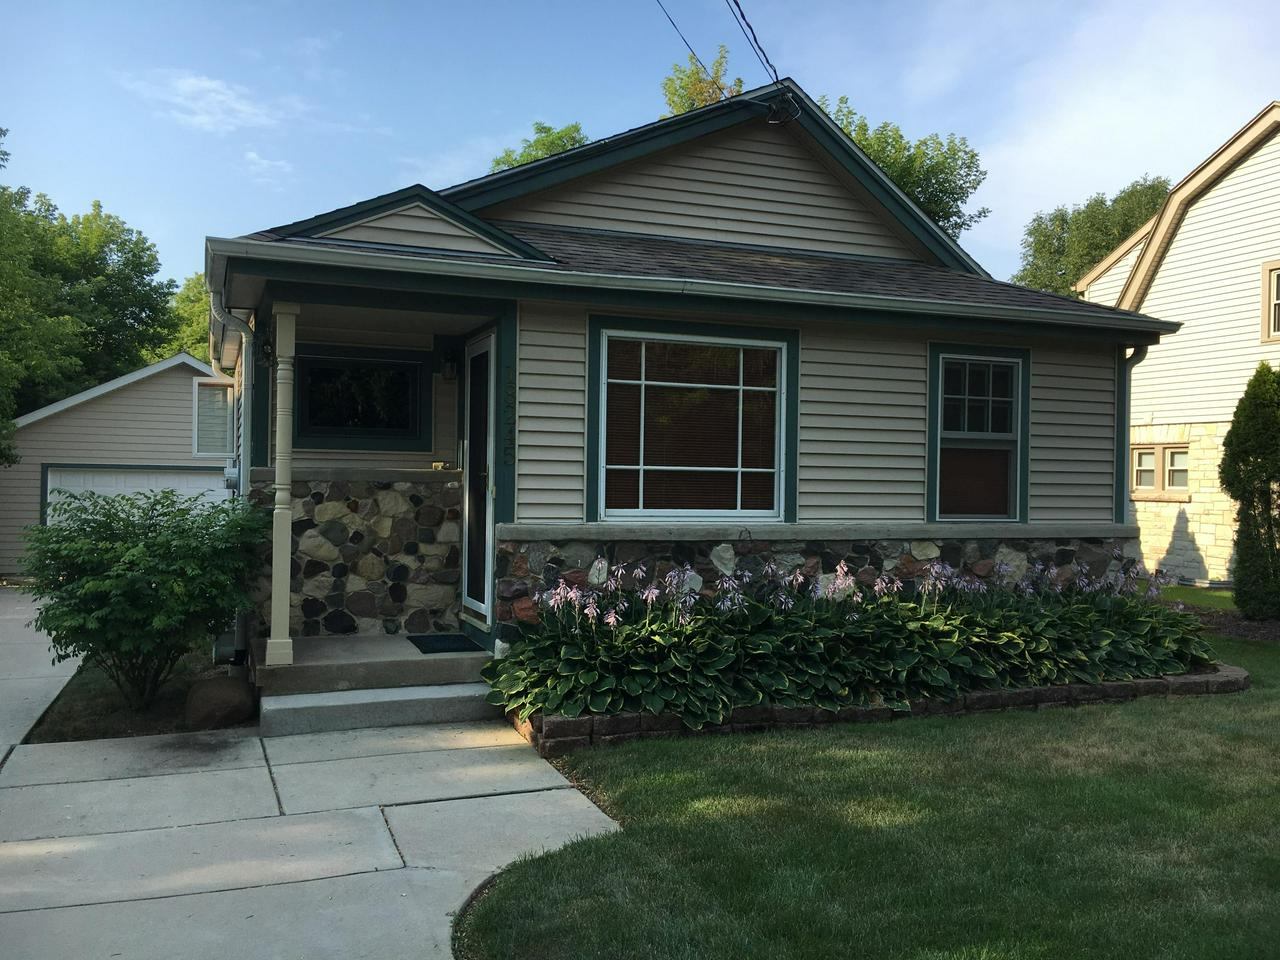 Welcome home to this adorable 2 bedroom, 1 bath in the heart of the Historic Village of Brookfield.  Beautiful Cherry HWF through-out living room and kitchen. Kitchen also boasts raised oak panel cabinets and all appliances included. Attractive bathroom with corian oak vanity. 2 nice size bedrooms with newer carpeting complete the main level. Outside, you will find a Newer('10) Full 2 car garage. Serine and private the backyard is perfect for entertaining or sit and admire the beauty without backyard neighbors. Truly a must see!